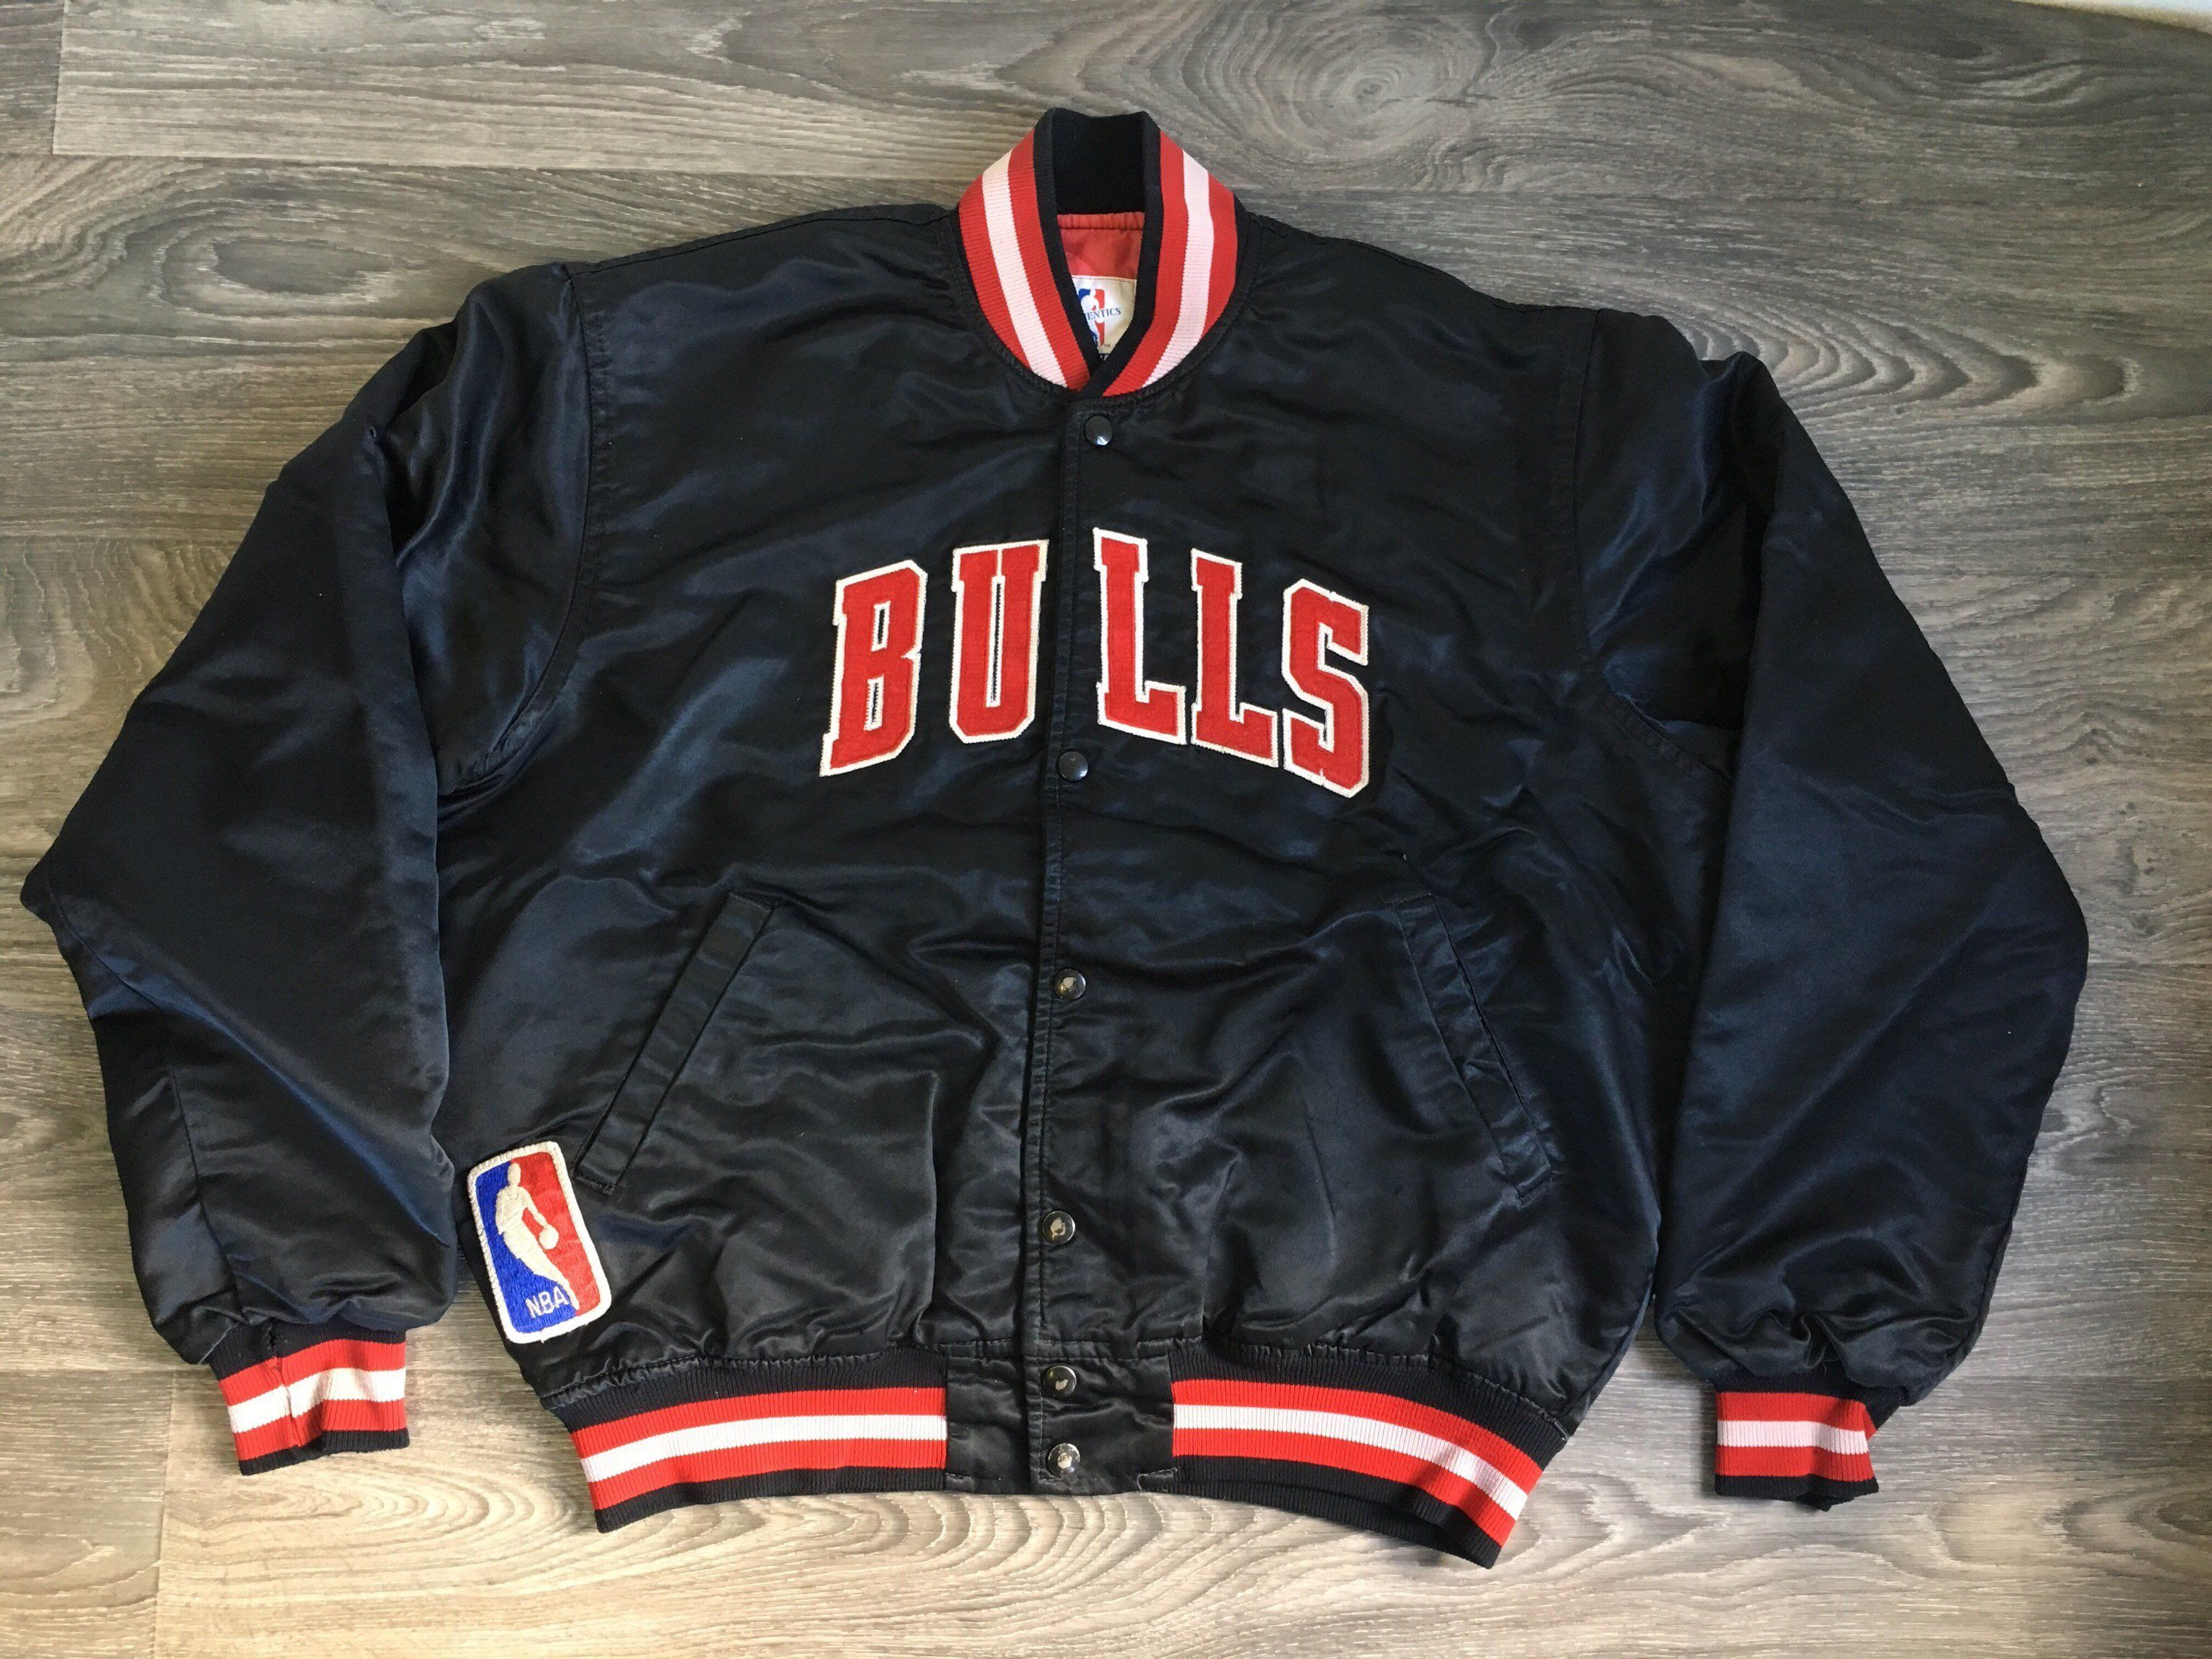 ff0149e6f786cc Vintage CHICAGO BULLS STARTER Jacket 80s Black Satin Quilted Snap Sewn  Patch Lettering Michael Jordan Basketball NbA UsA Men s Large by  sweetVTGtshirt on ...